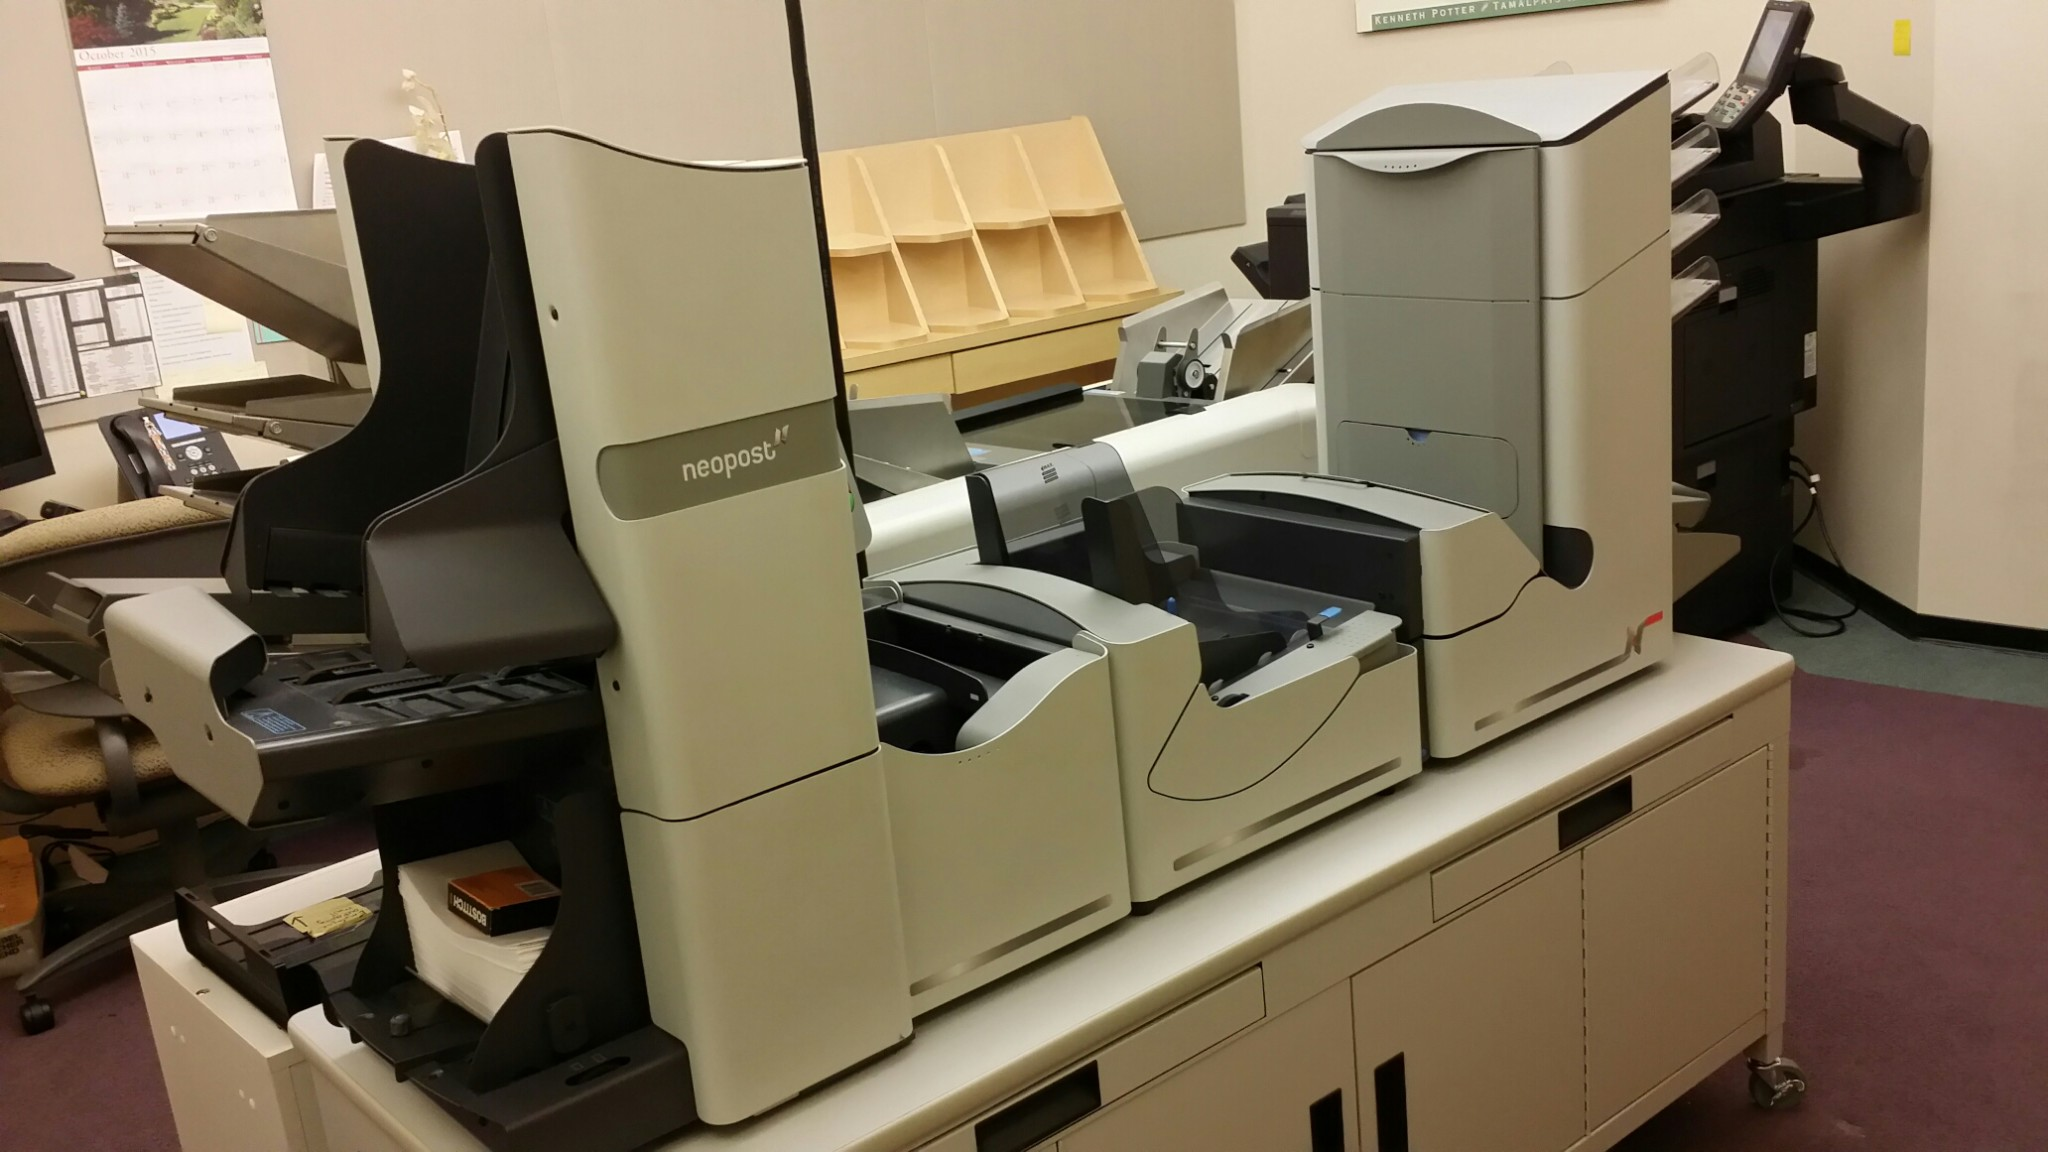 Neopost DS-100 and DS-8600 Inserter